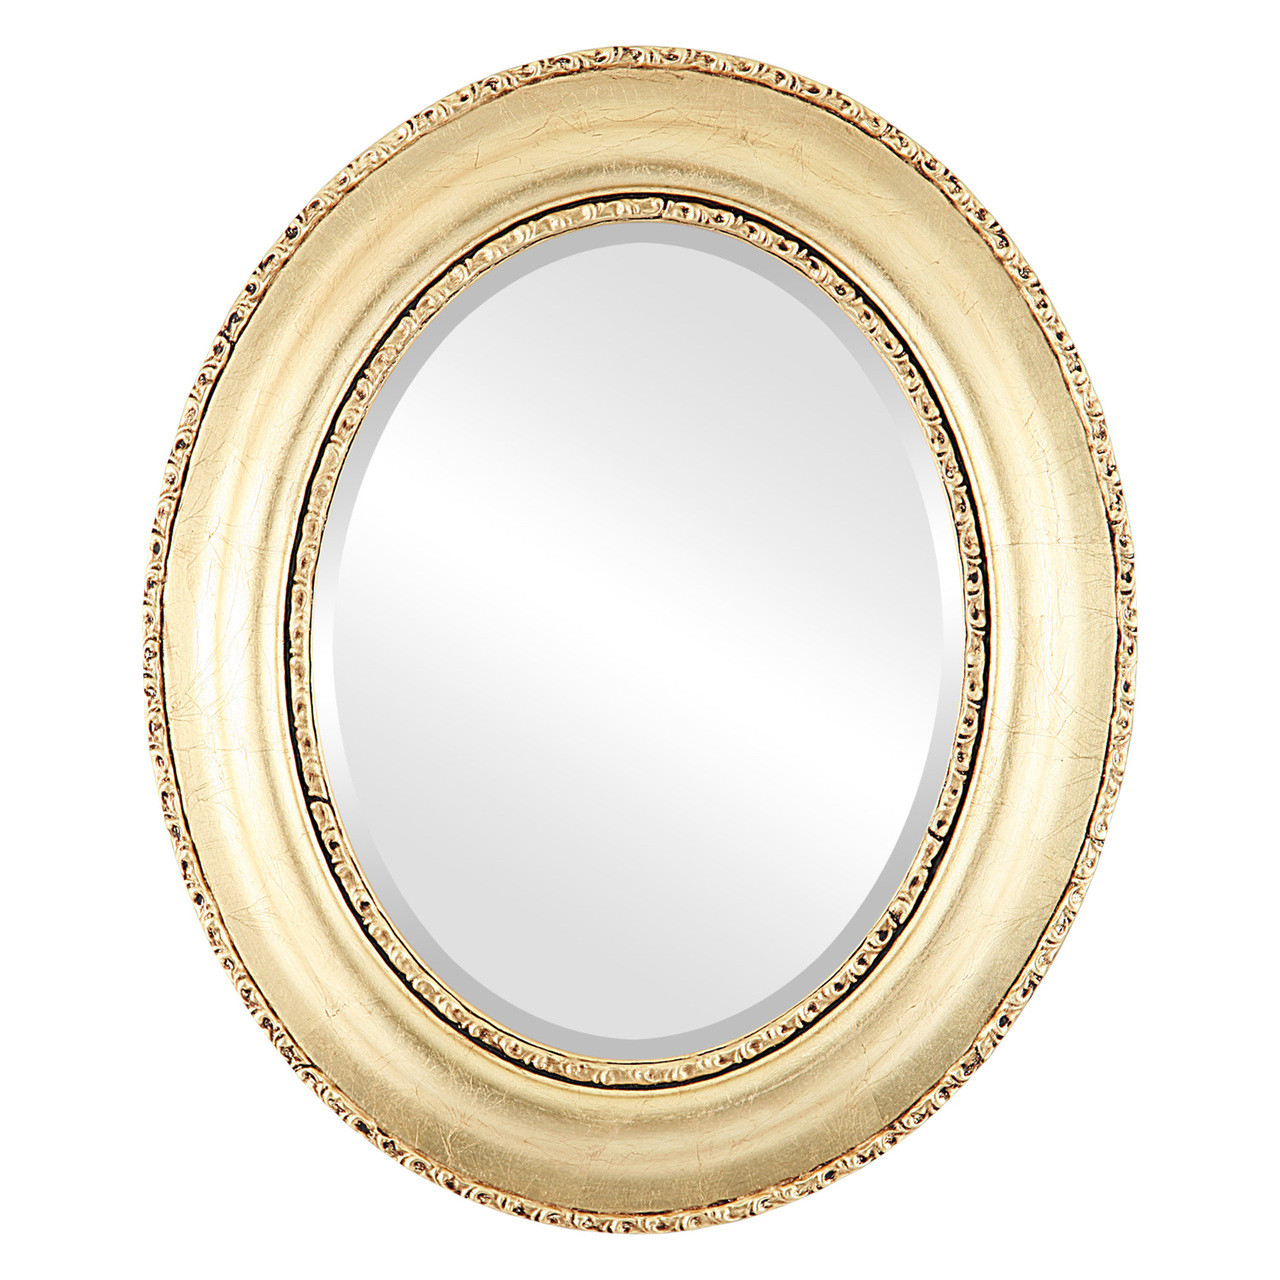 Antique Gold Oval Mirrors from $164 | Free Shipping